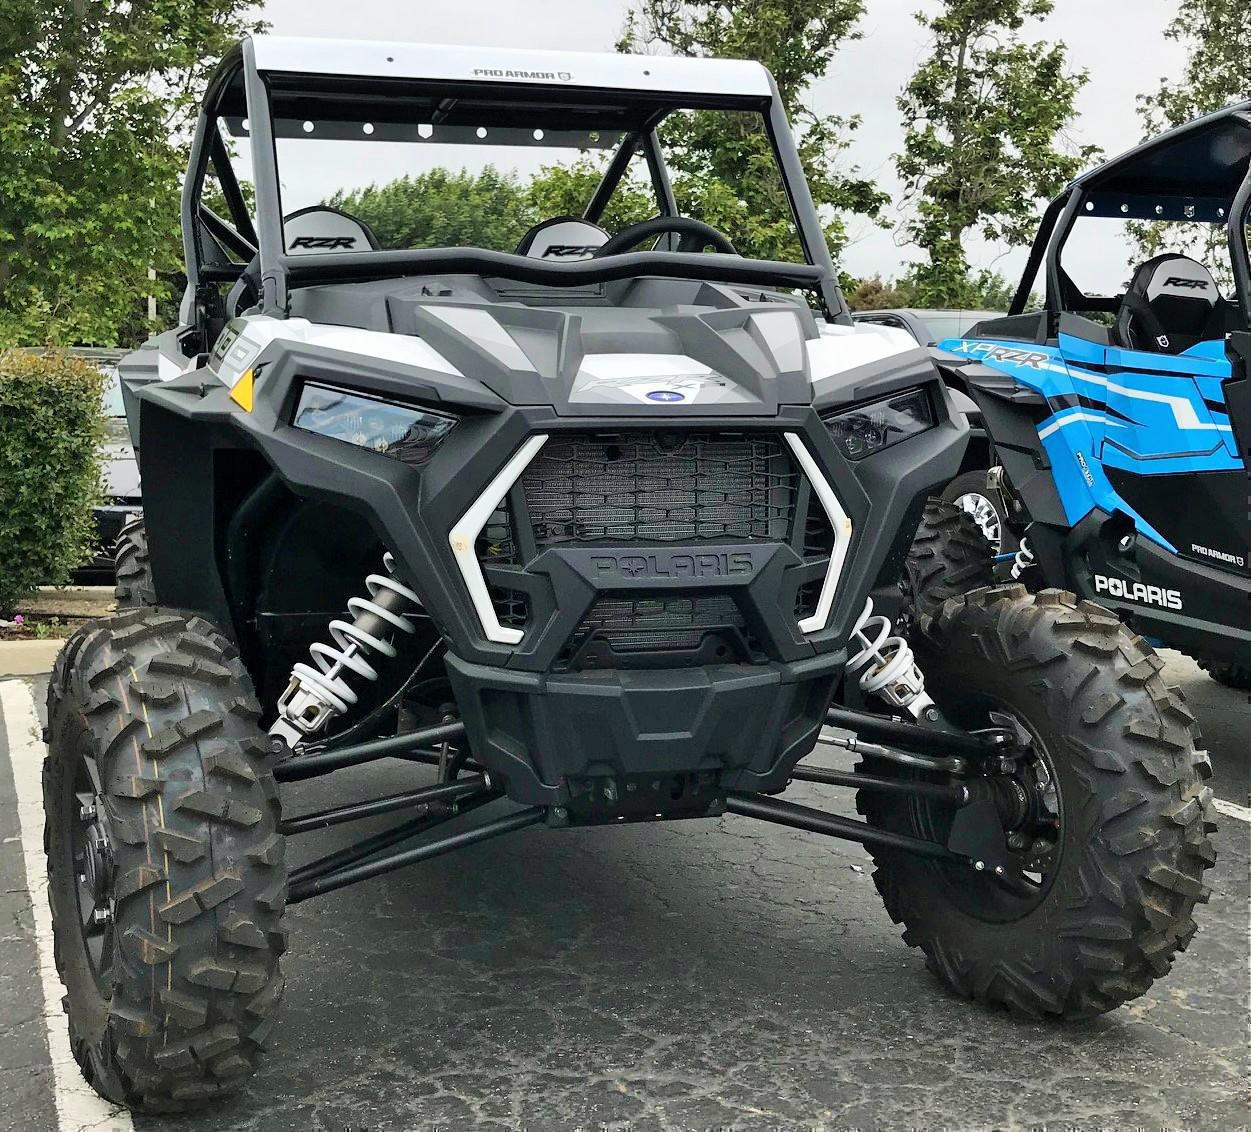 2019 Polaris Industries RZR XP 1000 EPS Pro-Built/Sand Ready Price Includes  Rebate